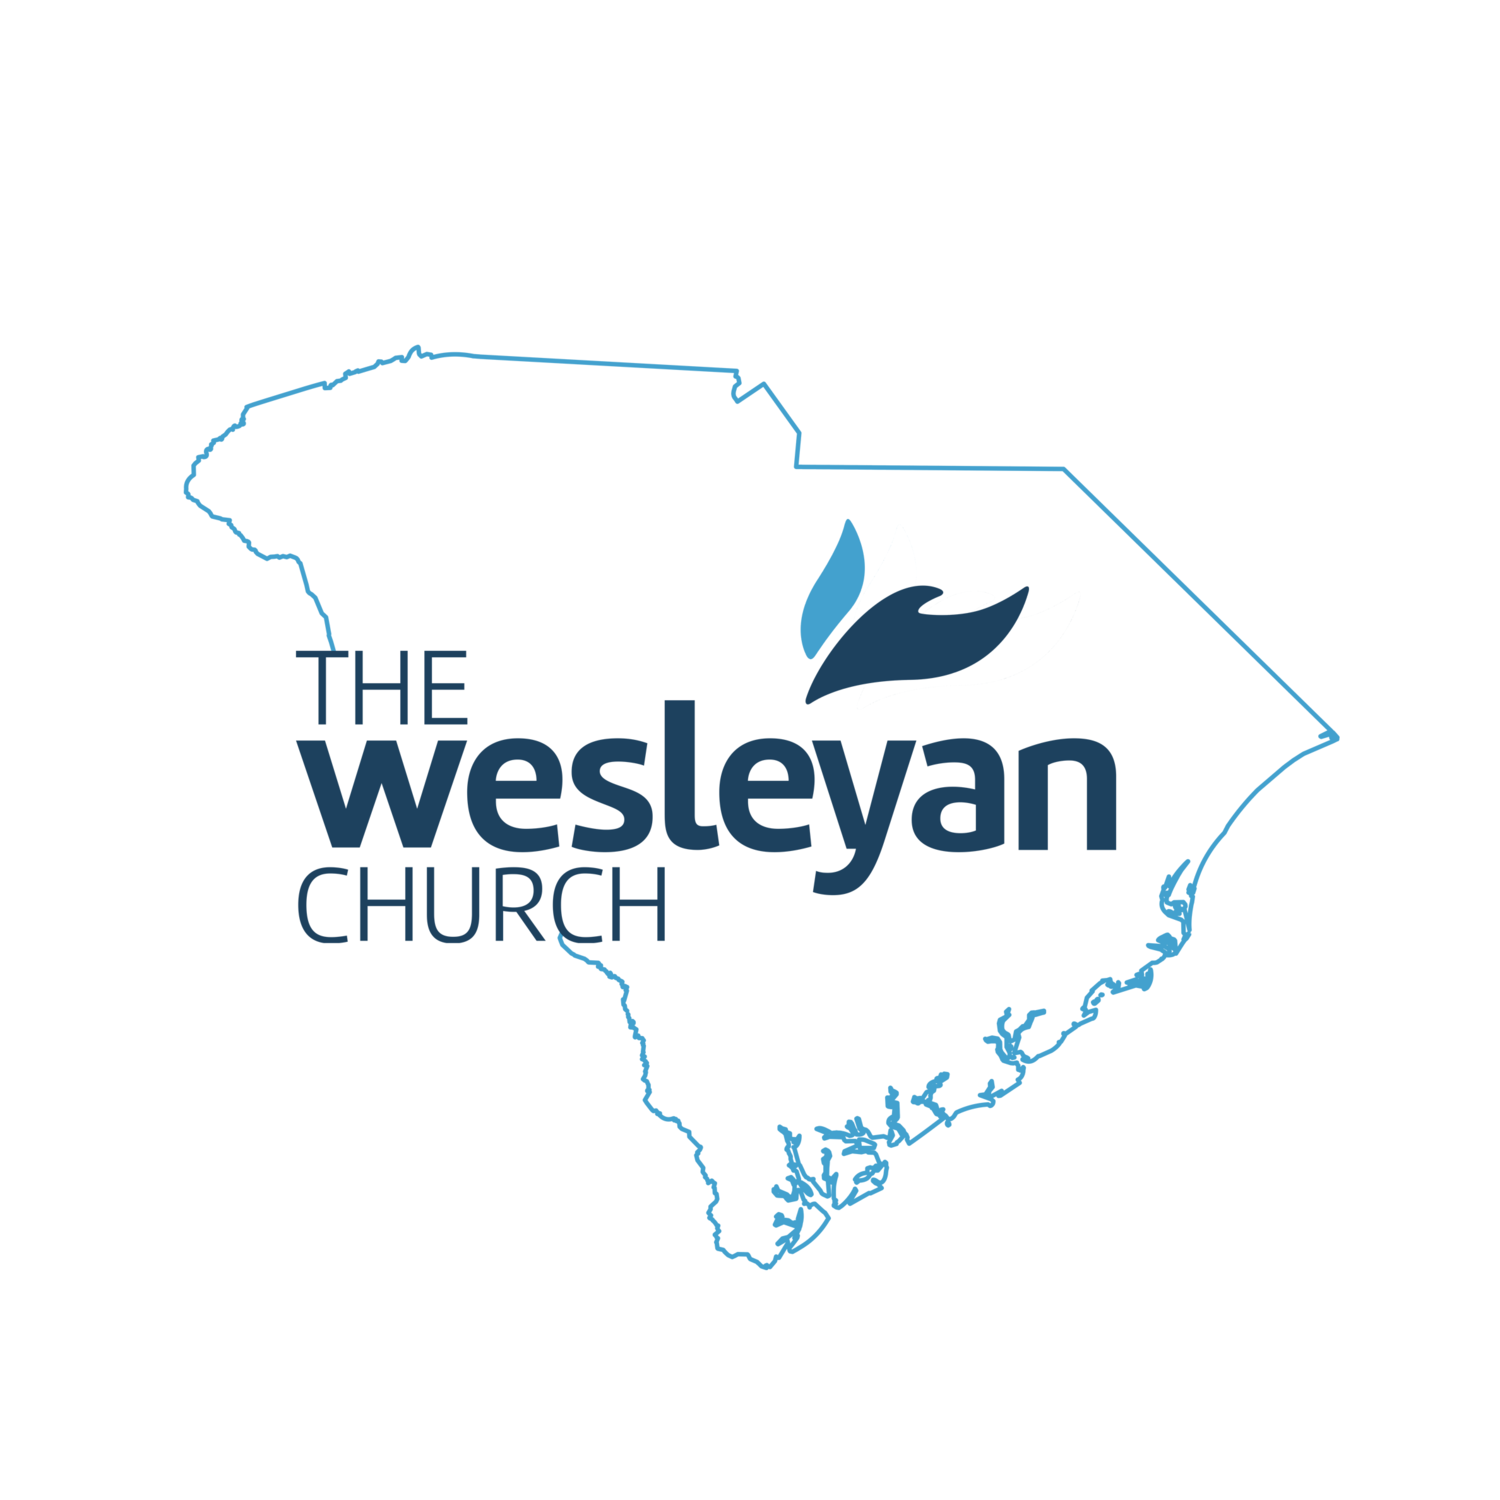 South Carolina District of the Wesleyan Church